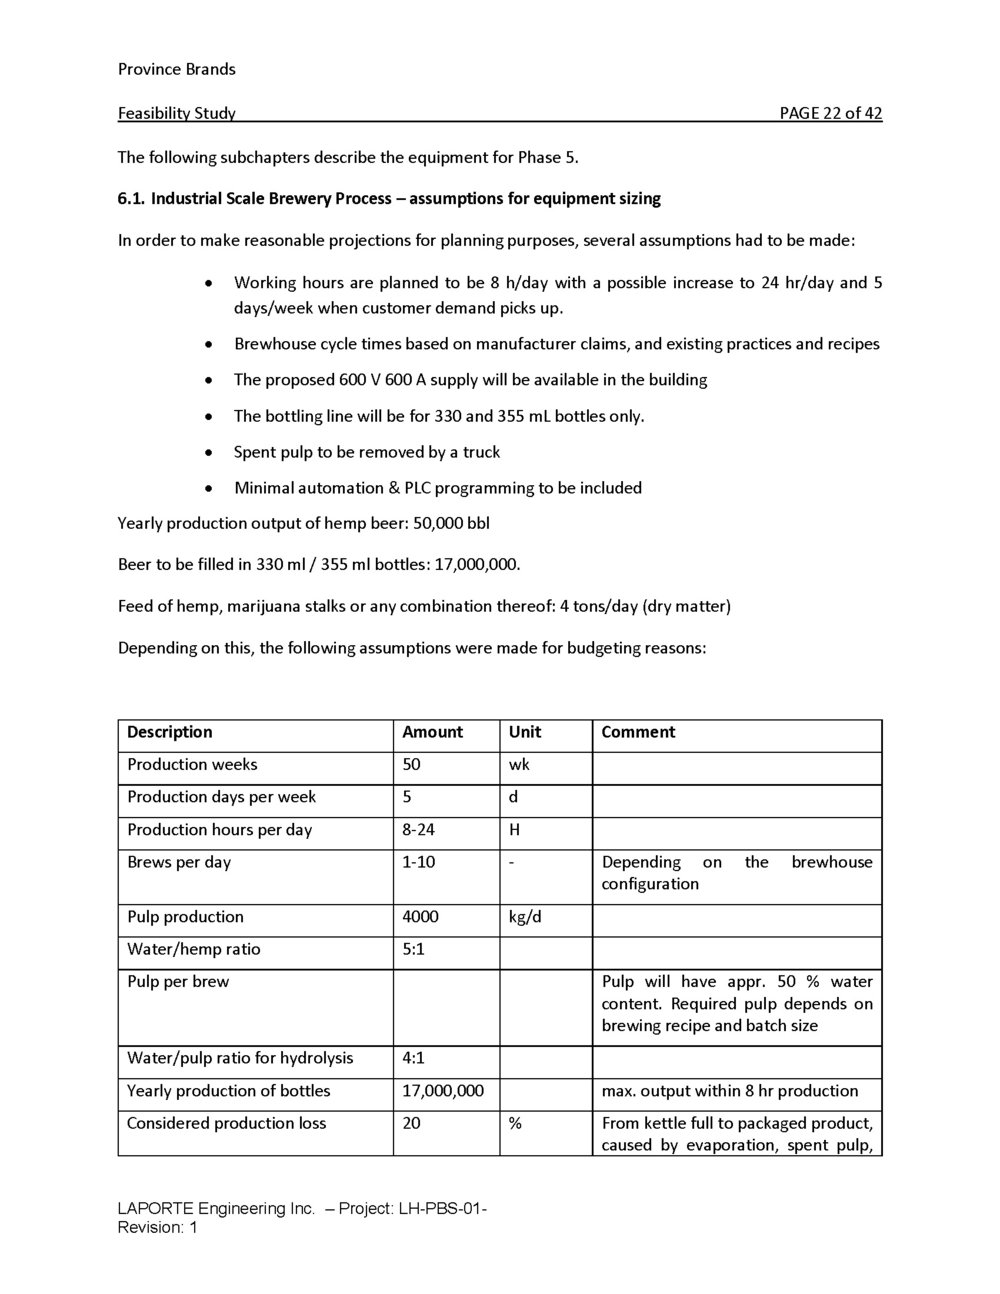 LH-PBS-01_Feasibility Study Report_01 Sep - kevwitch and dooma comments_Page_22.jpg